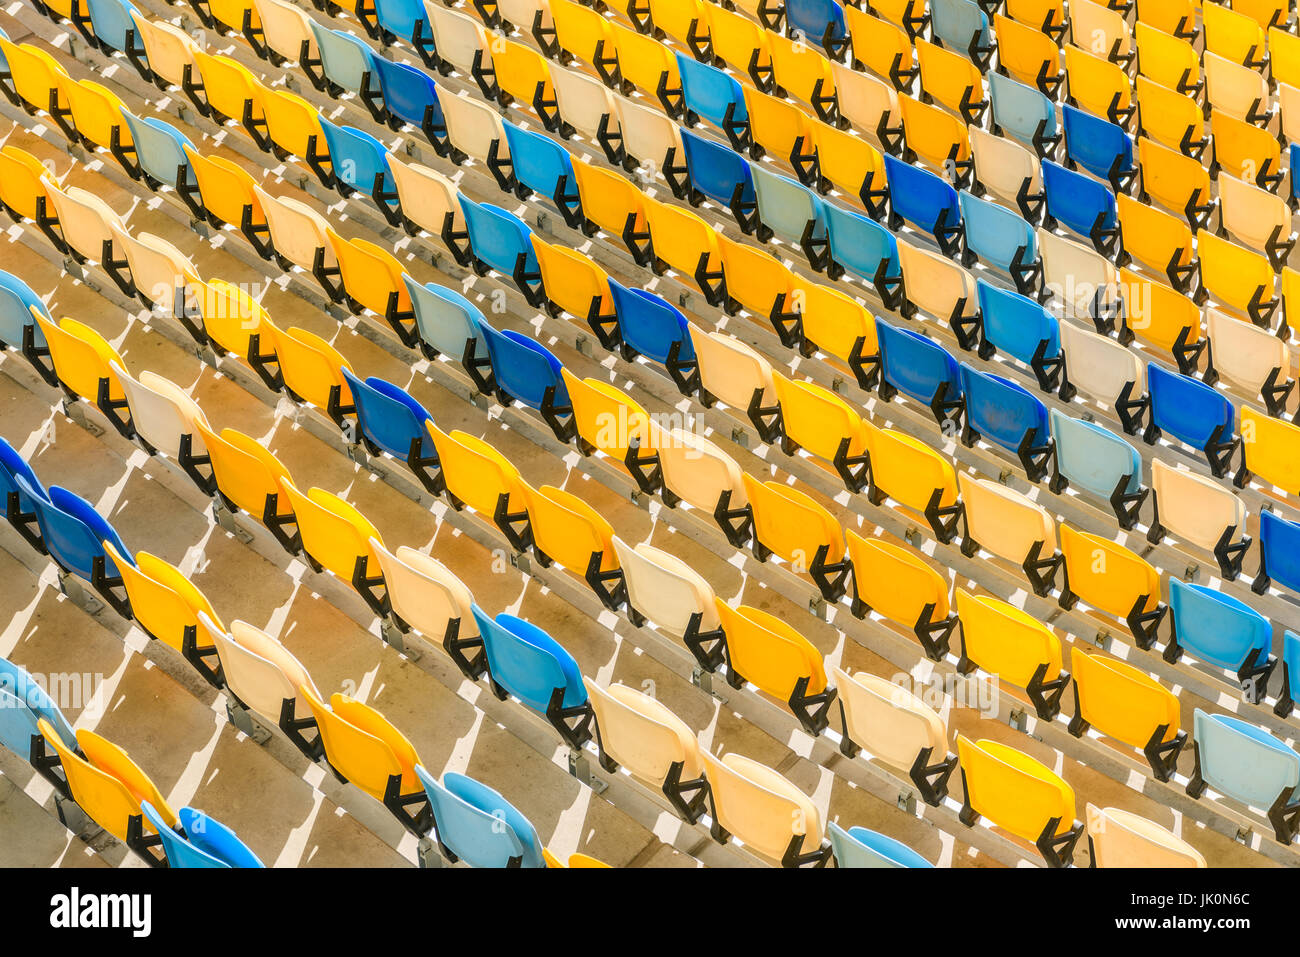 elevated view of rows of yellow and blue stadium seats background - Stock Image